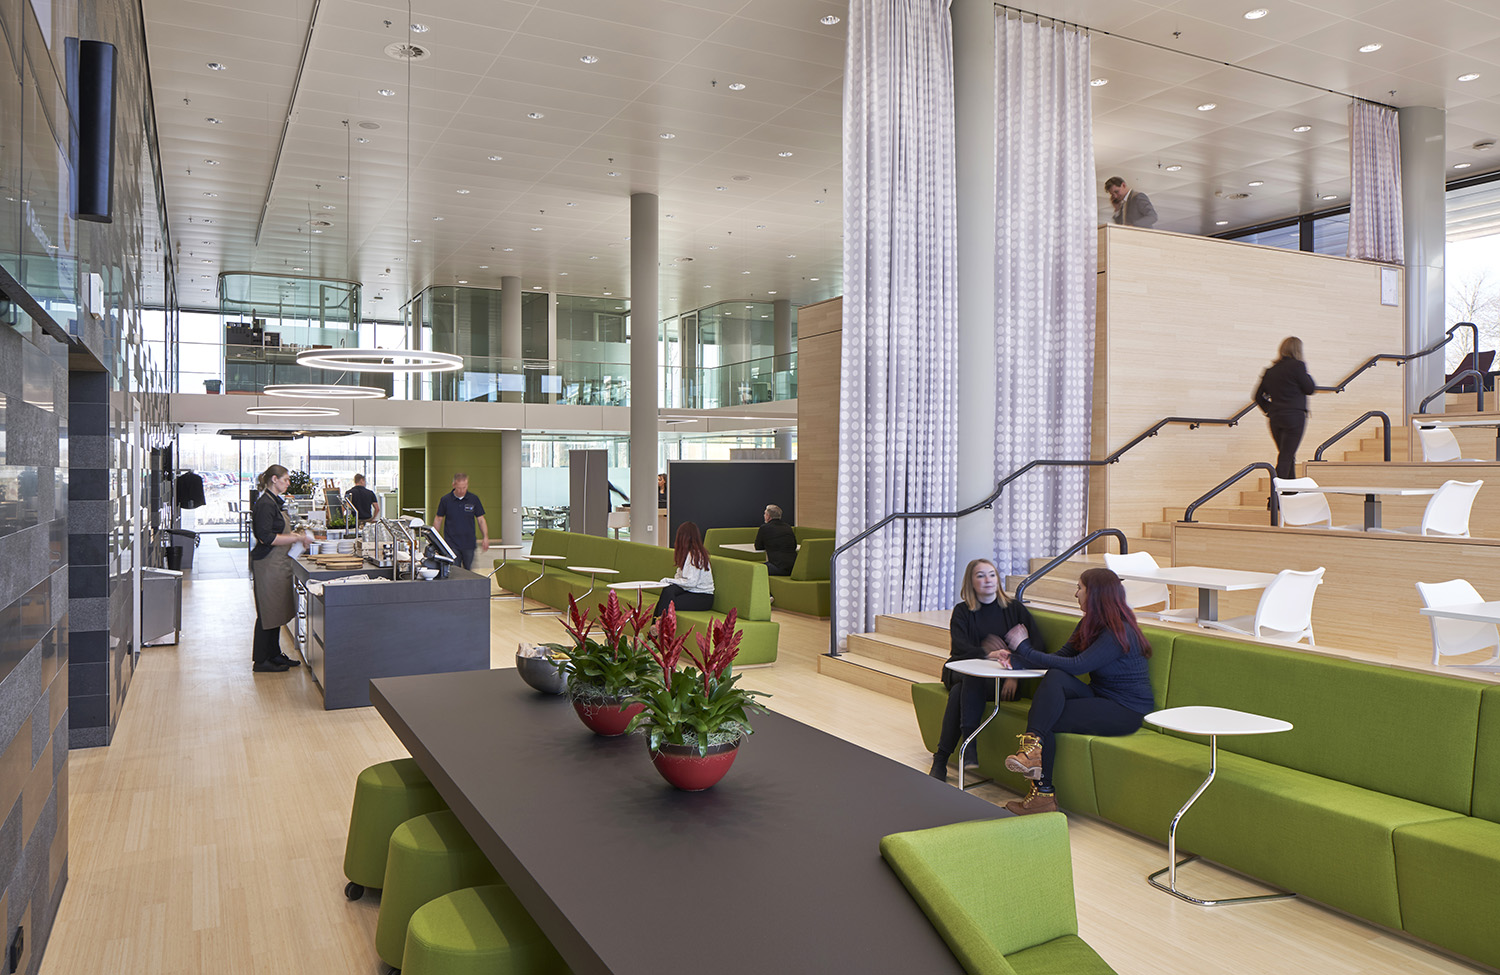 Rabobank has created a sustainable icon in which customers as well as businesses, stakeholders, schools and the non-profit sector can meet. It is open, transparent and sustainable (BREEAM Excellent). The c © Ronald Tilleman